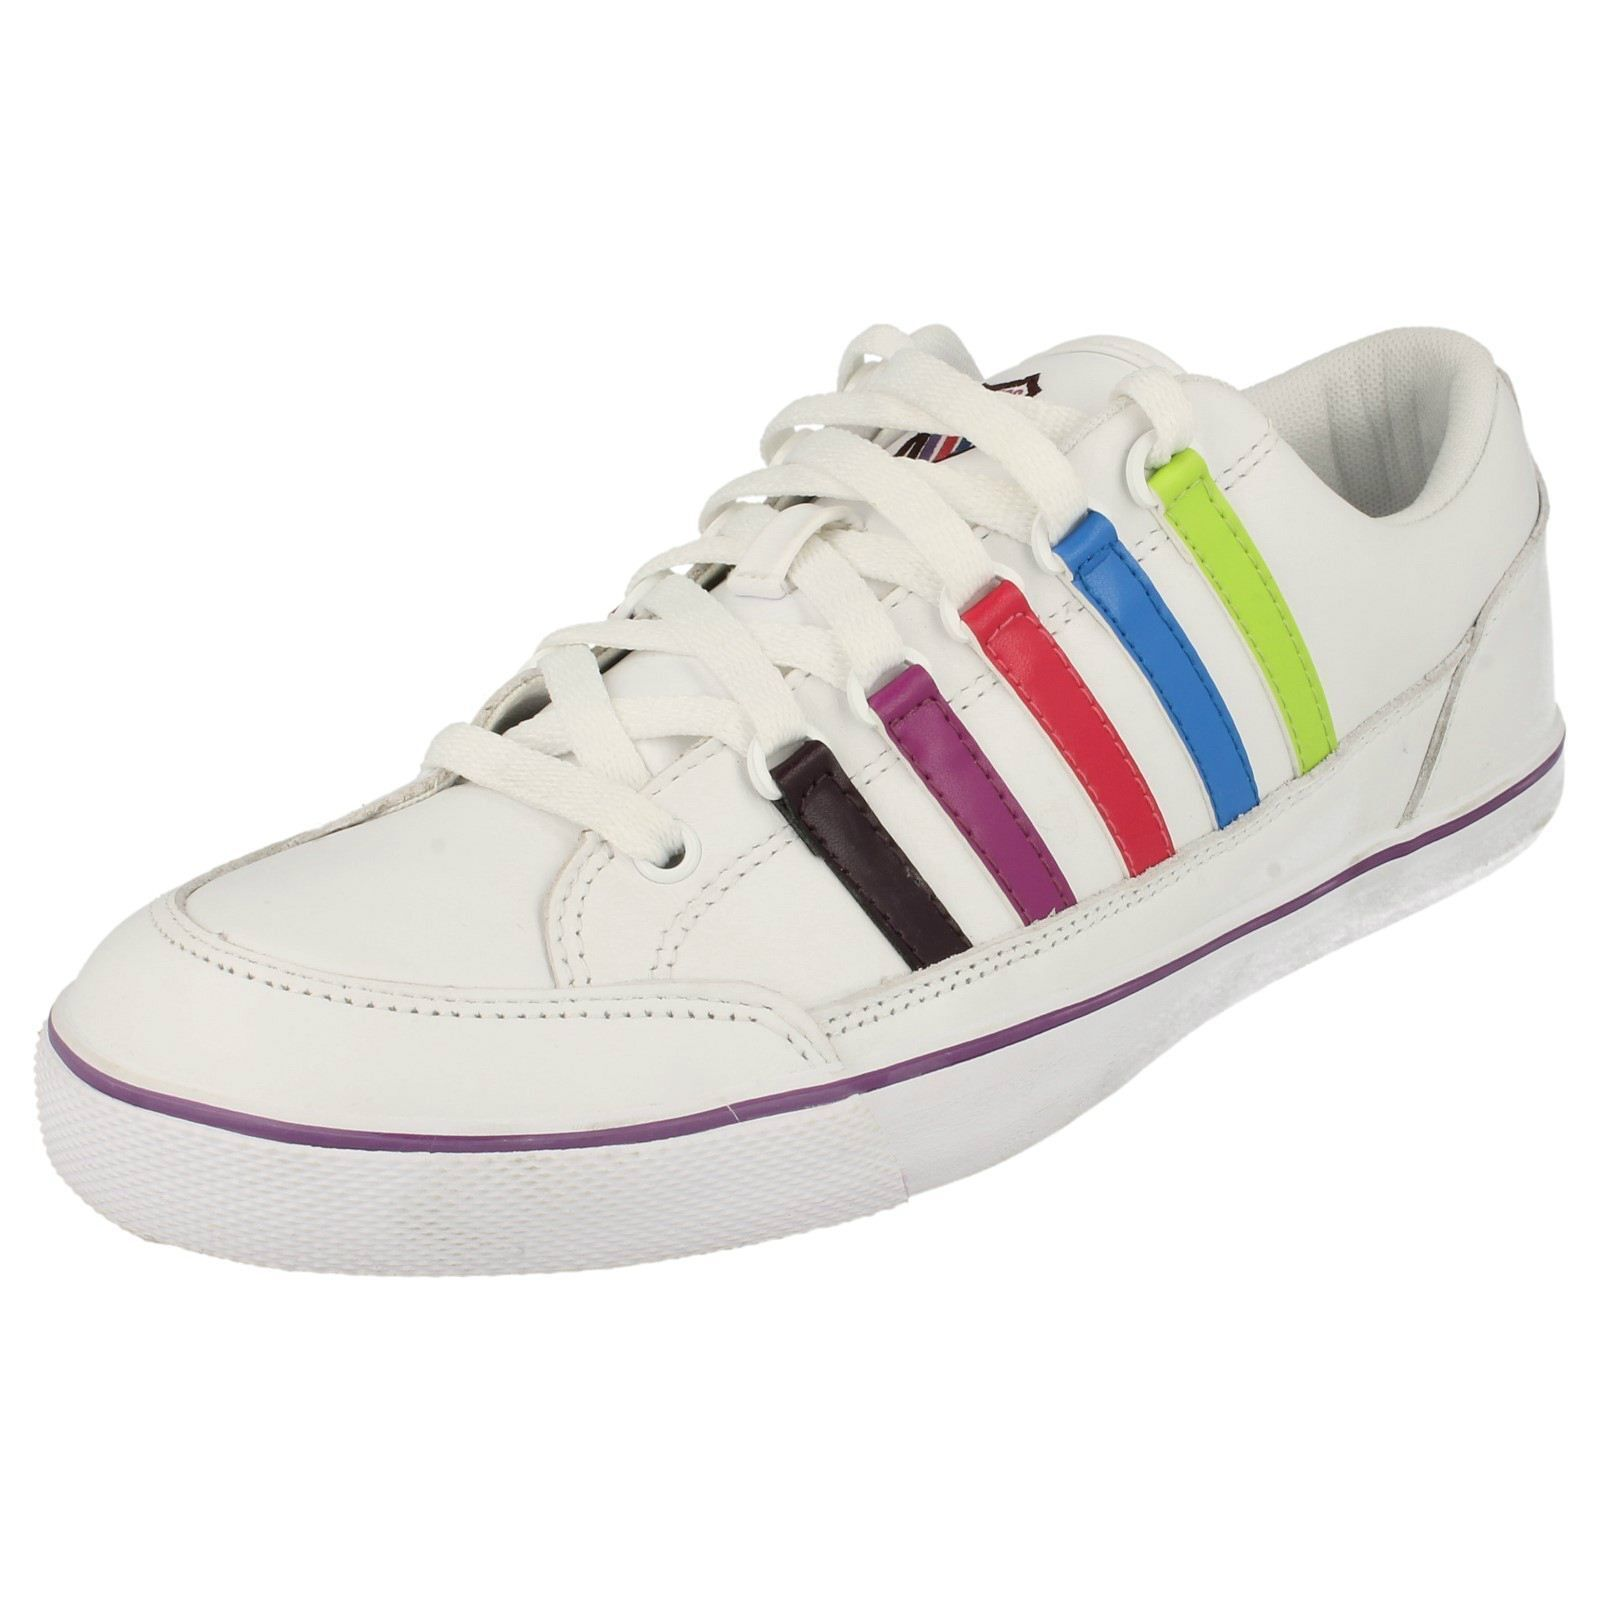 LADIES K-SWISS WHITE TECH MULTI LACE UP TRAINERS SURF AND SAND